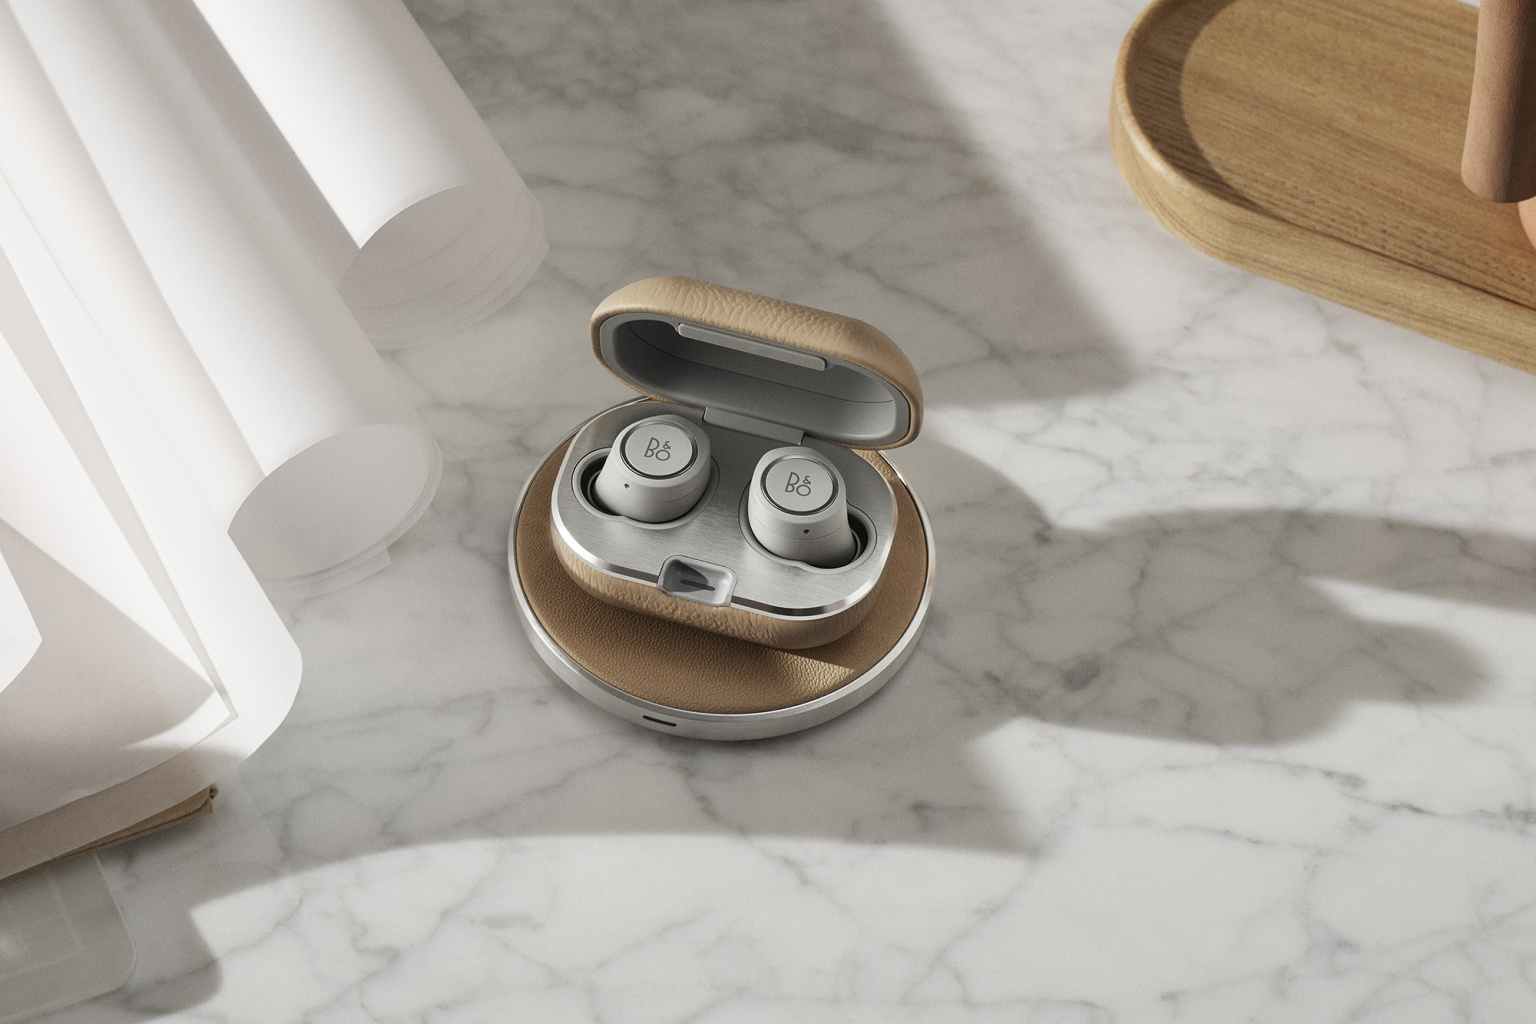 bang-and-olufsen-beoplay-e8-2-03.jpg